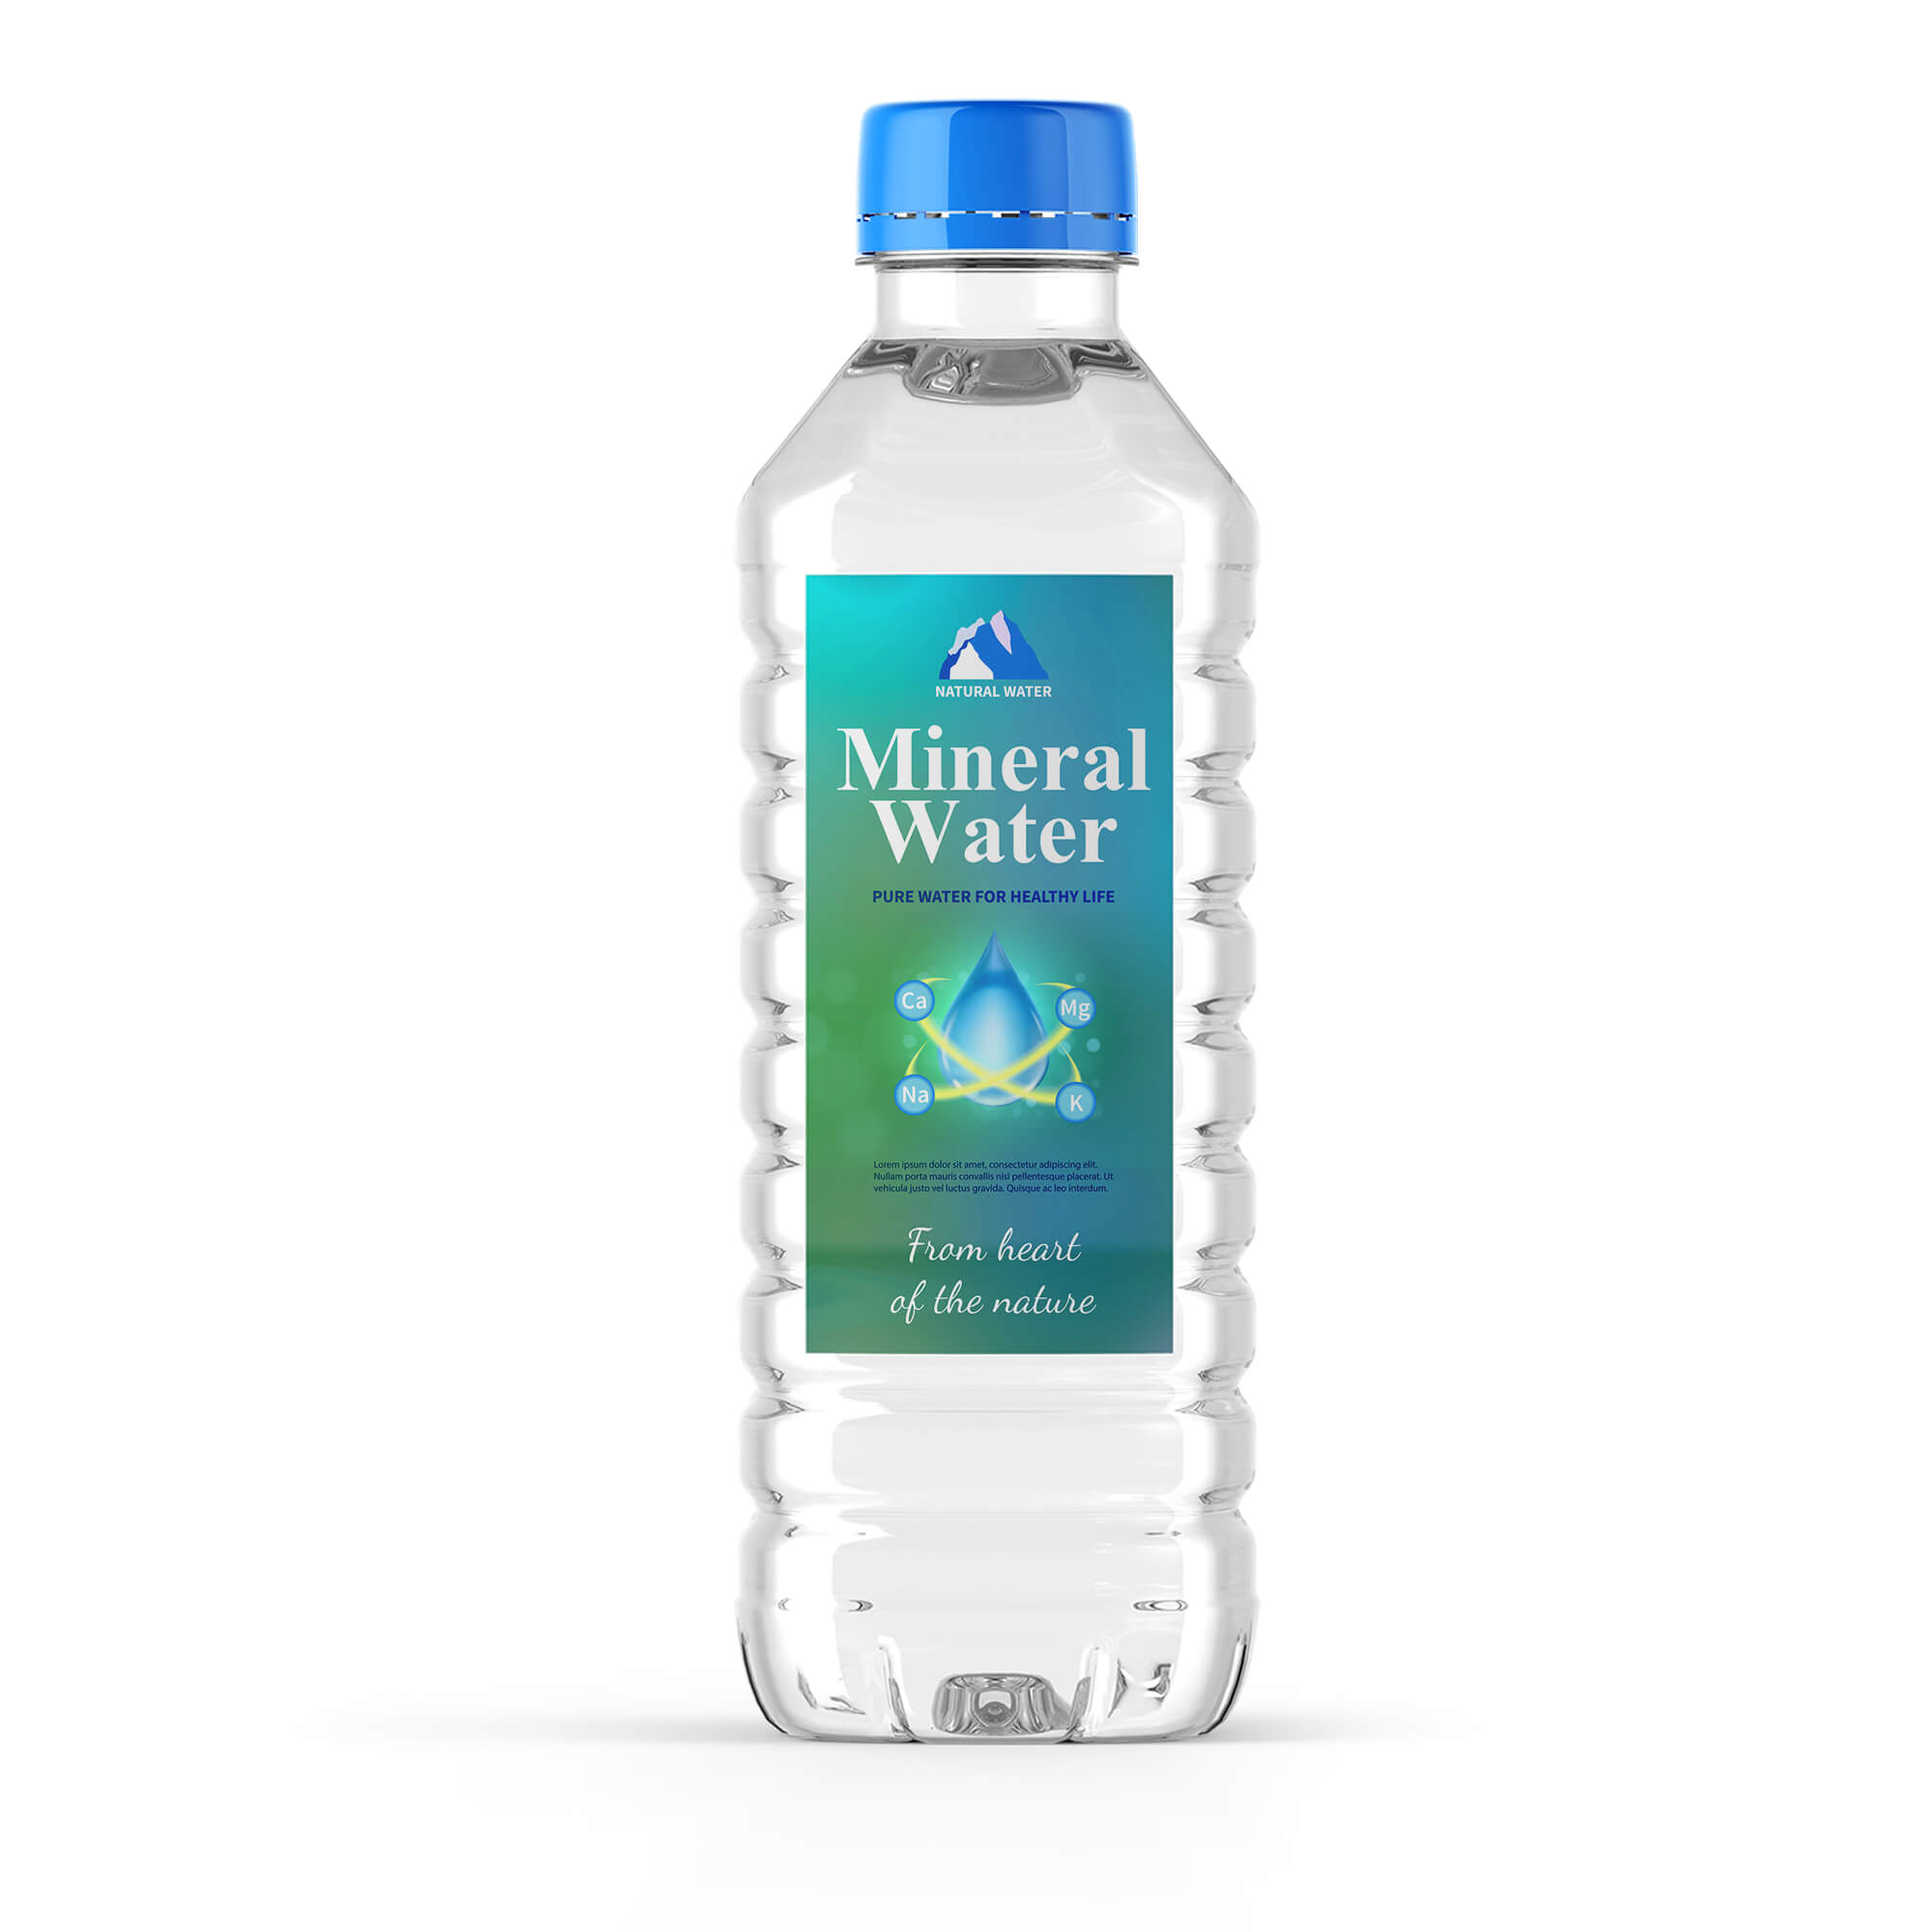 Design Free Mineral Water Bottle Mockup PSD Template